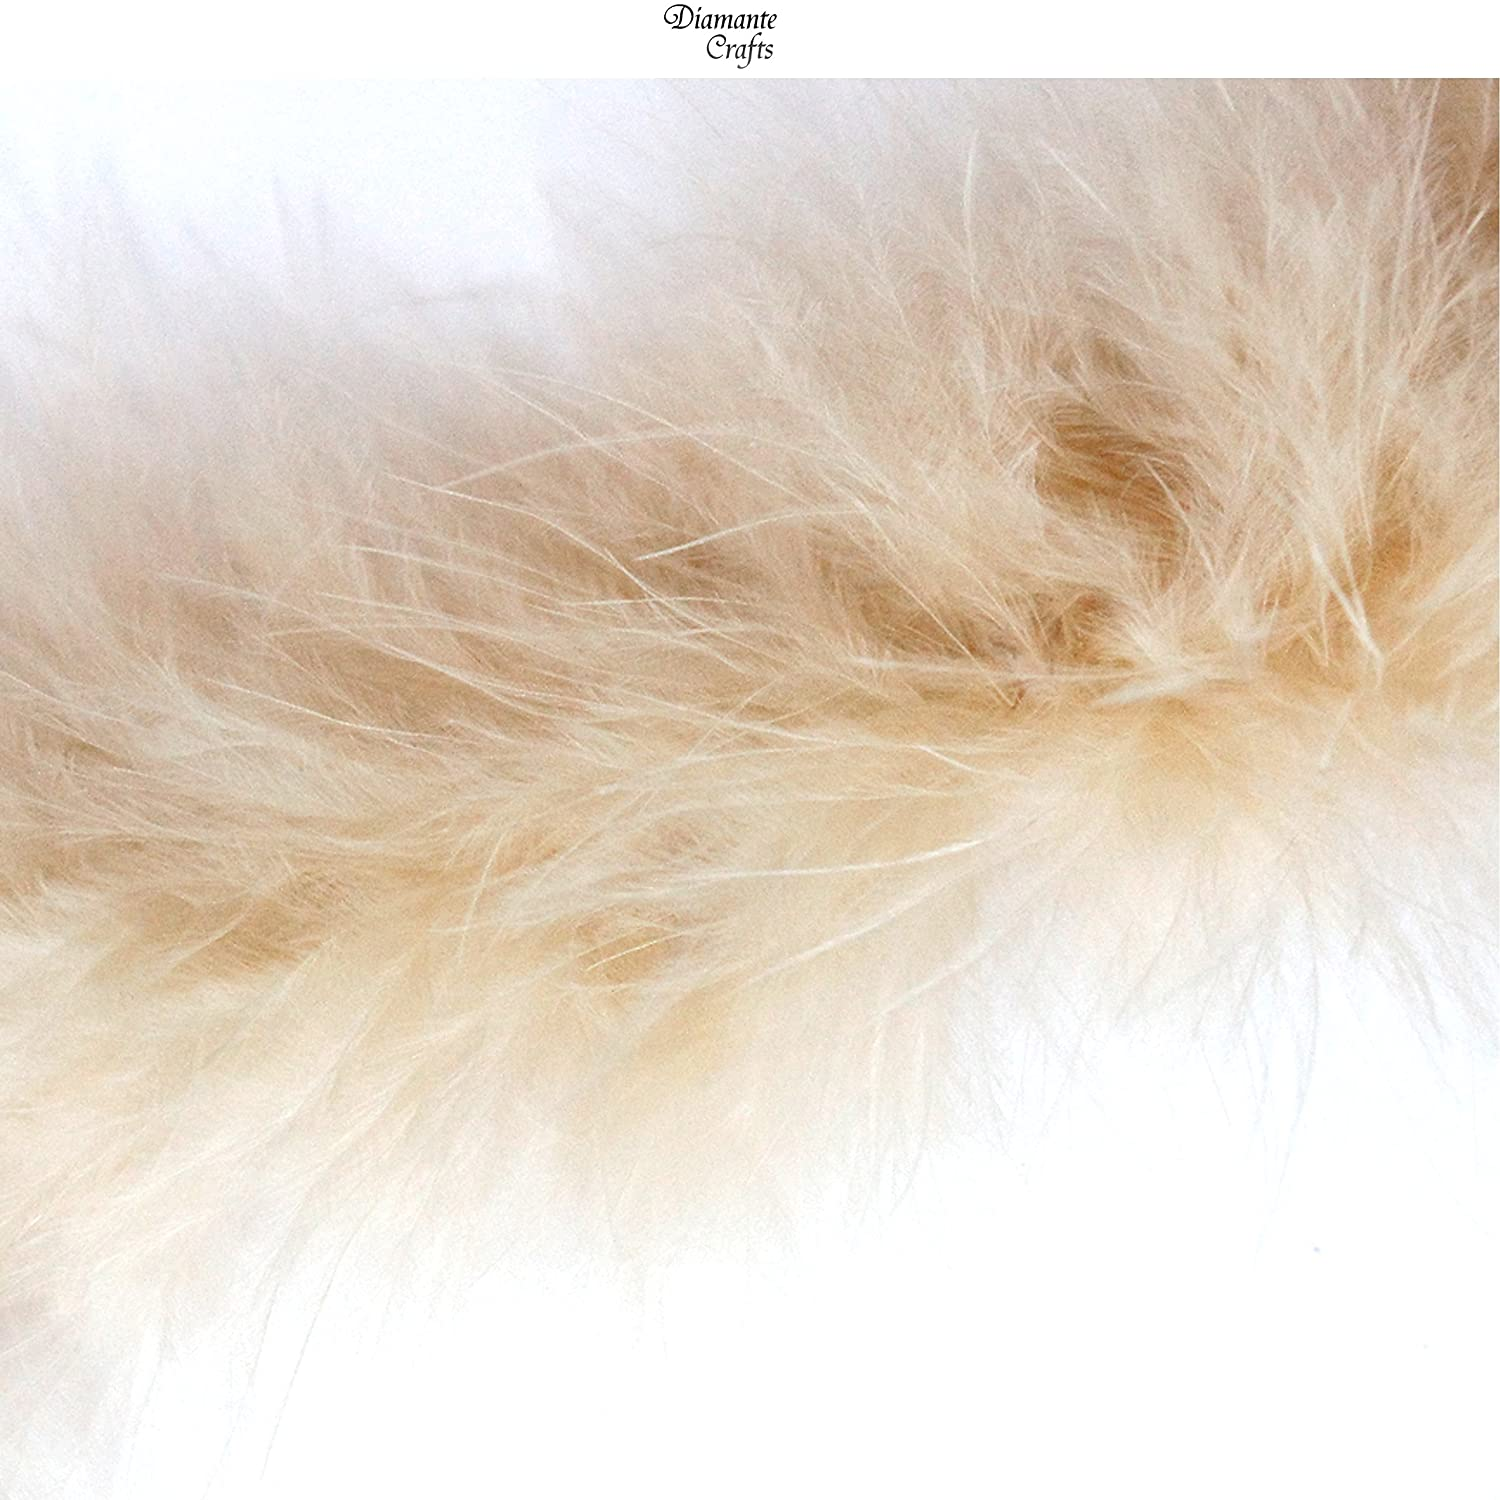 1 Metre - Marabou Swandown Feather Trim Soft & Fluffy Craft - Choose Colour (Natural - 1 Metre) Diamante Crafts